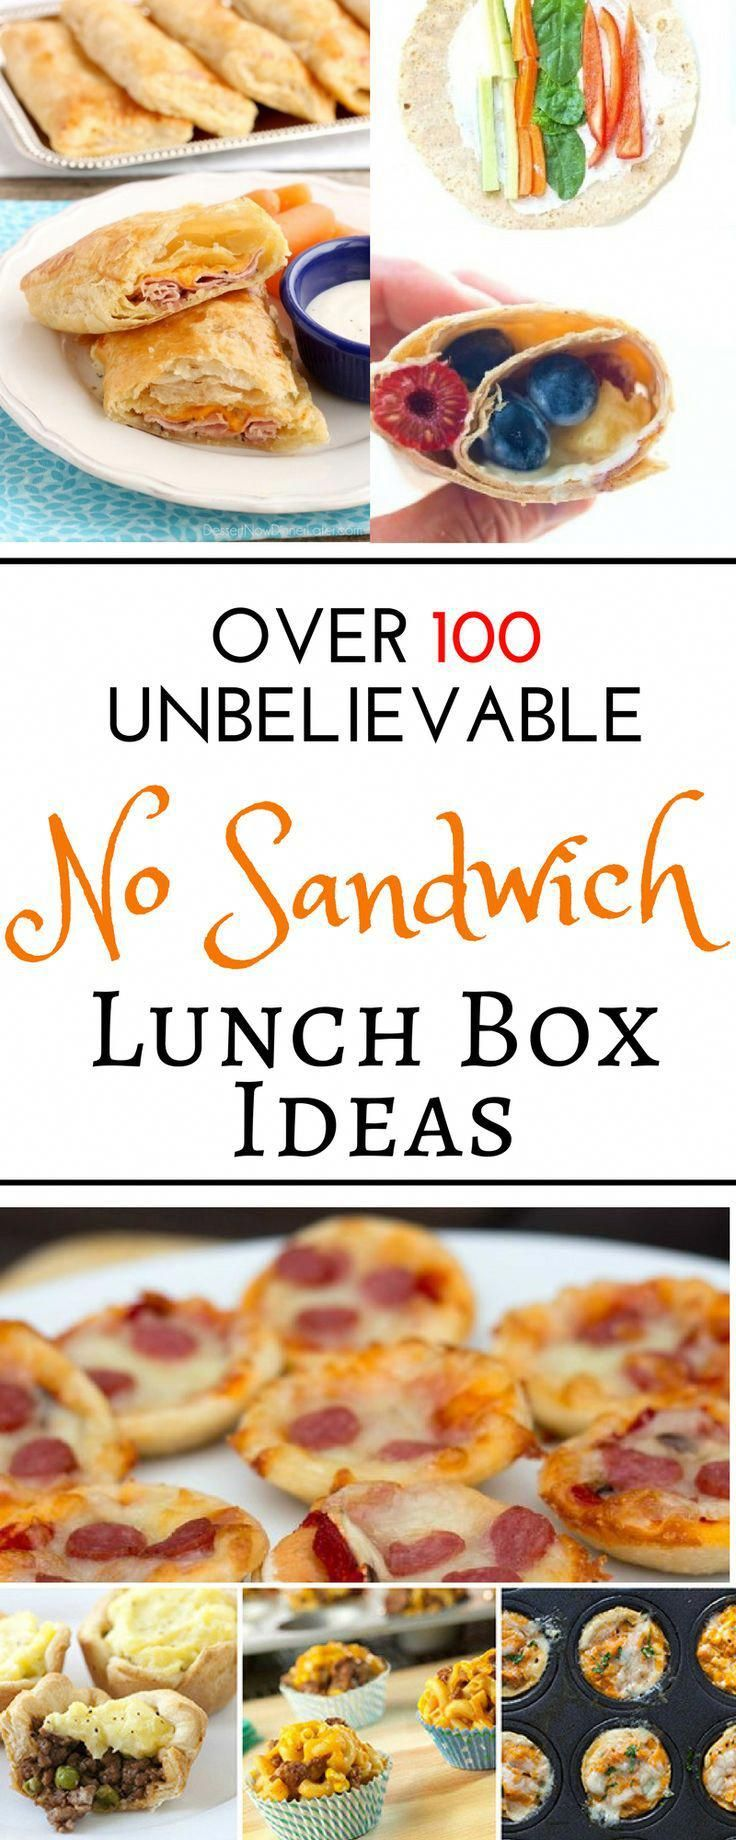 Creative Cold School Lunch Box Ideas For Picky Eaters images